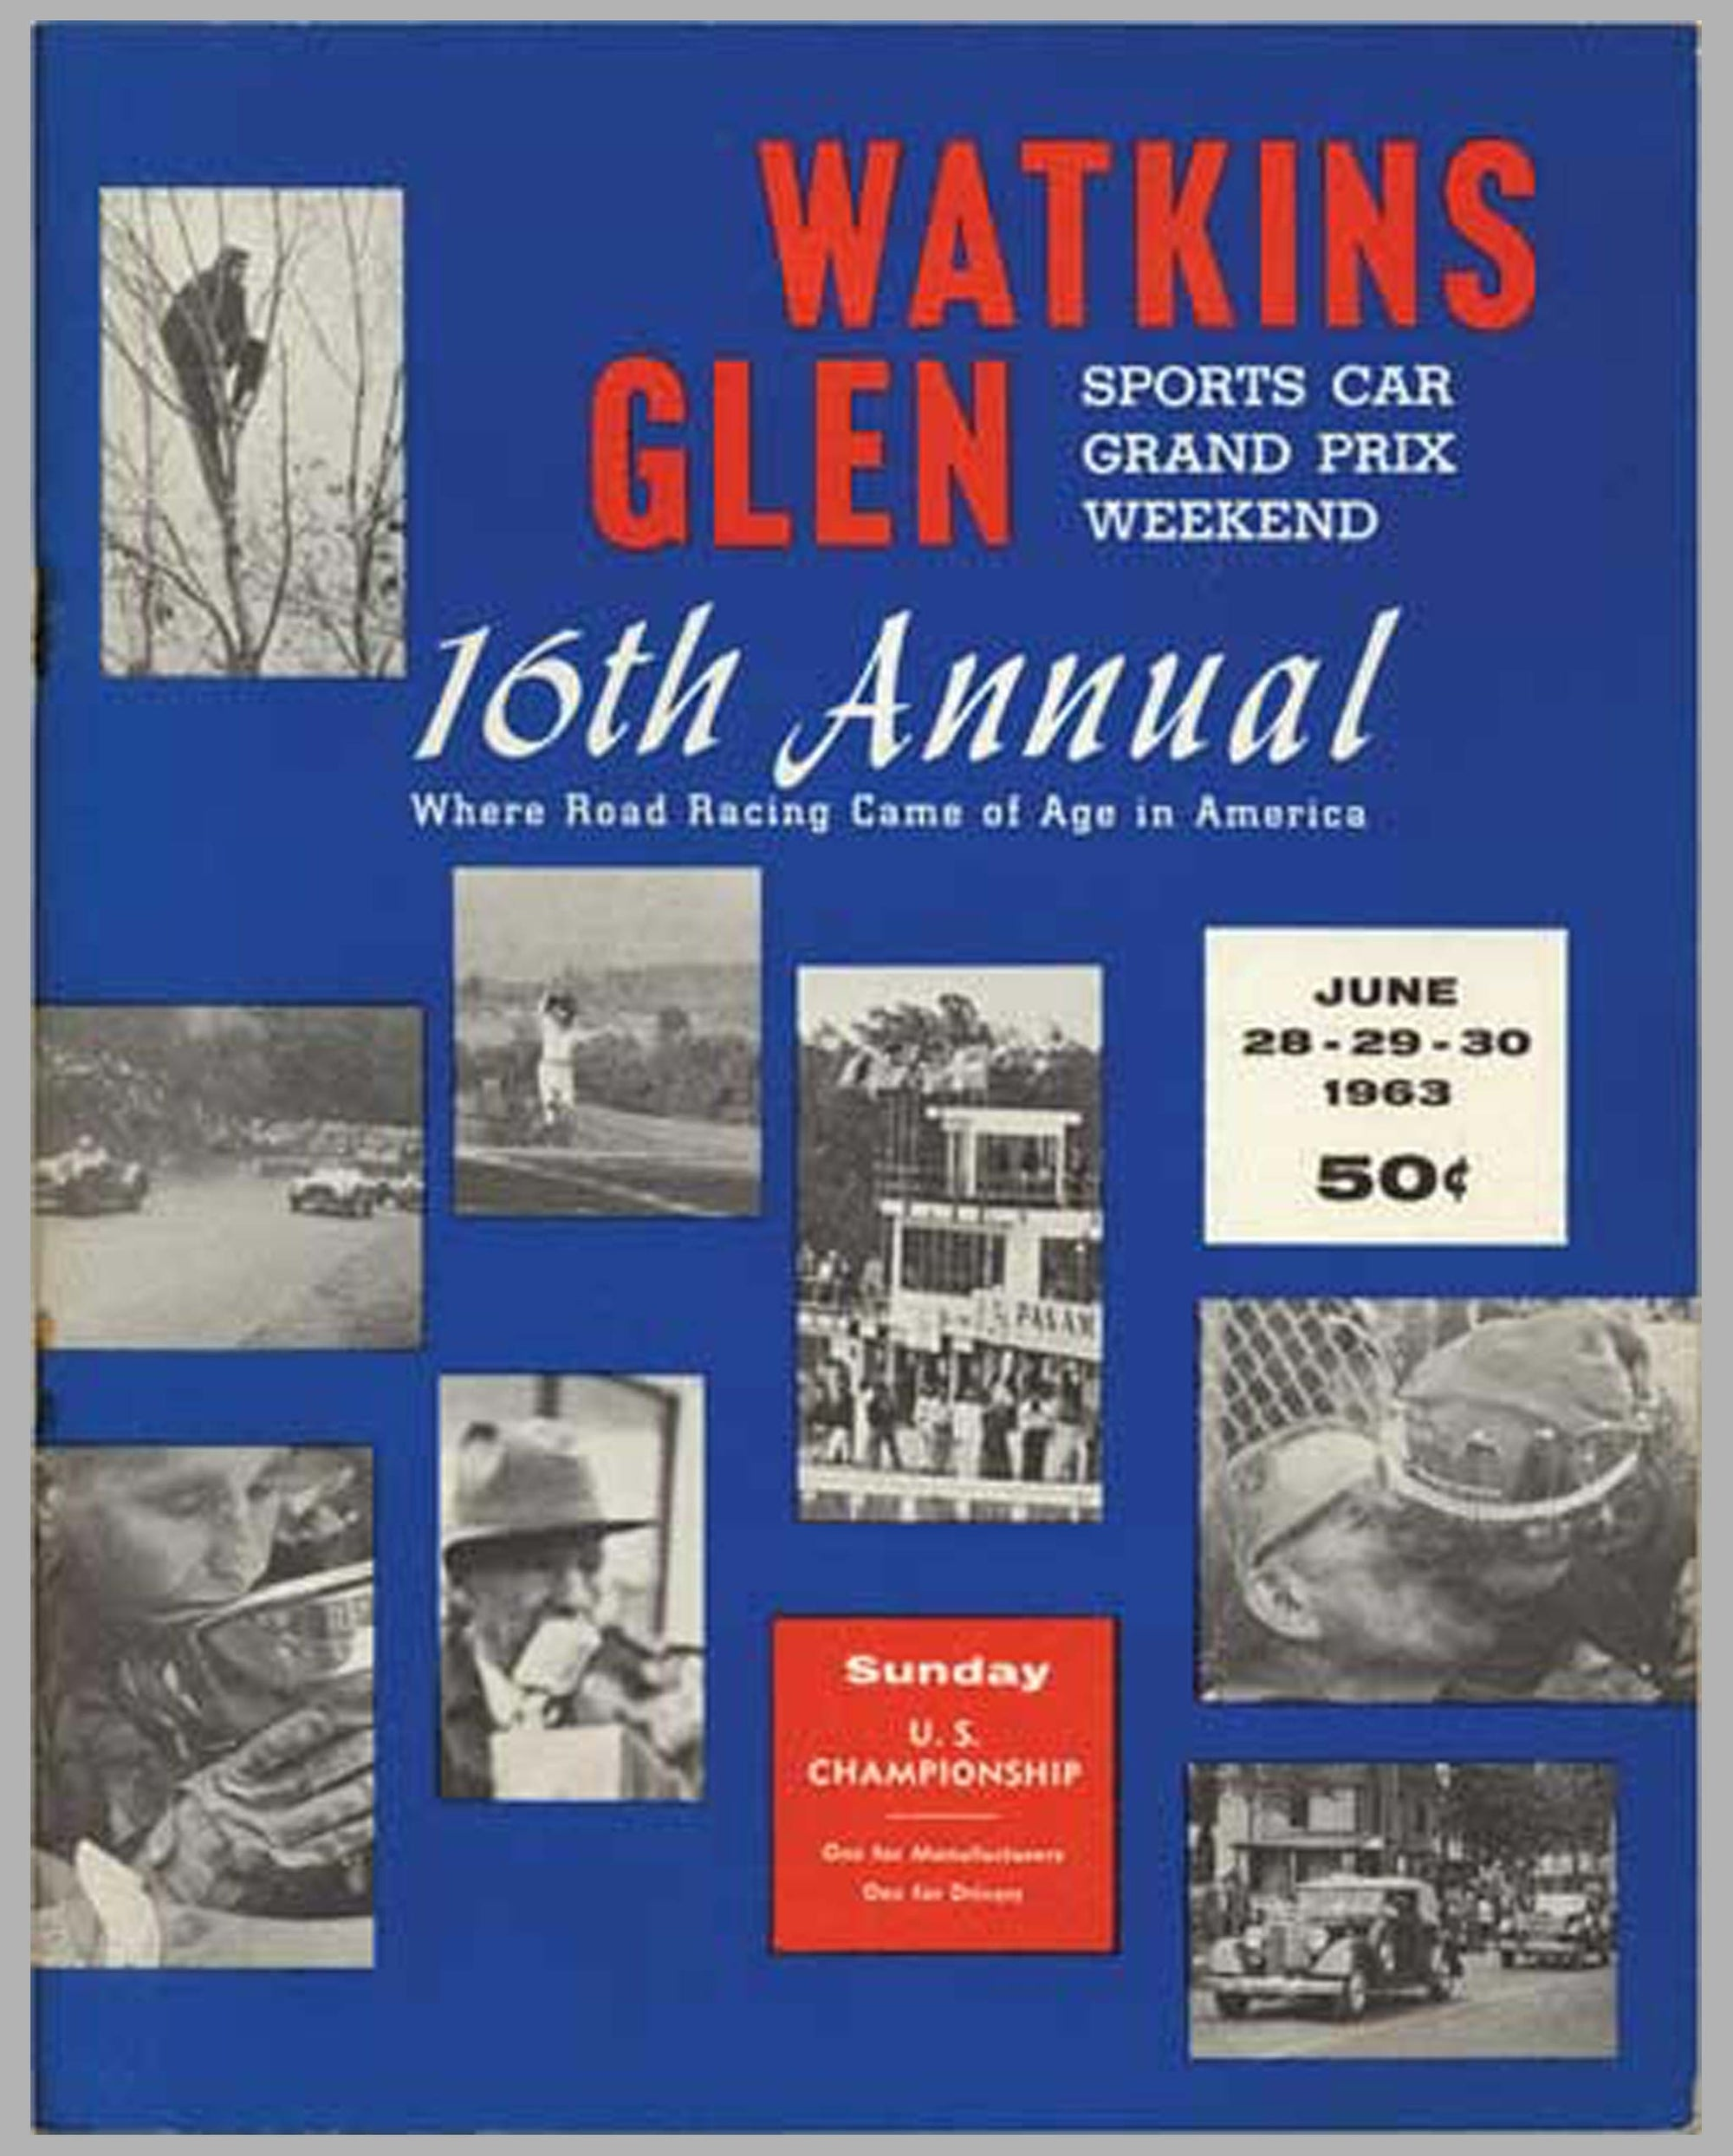 16th Annual Sports Car U.S.G.P. Watkins Glen 1963 program